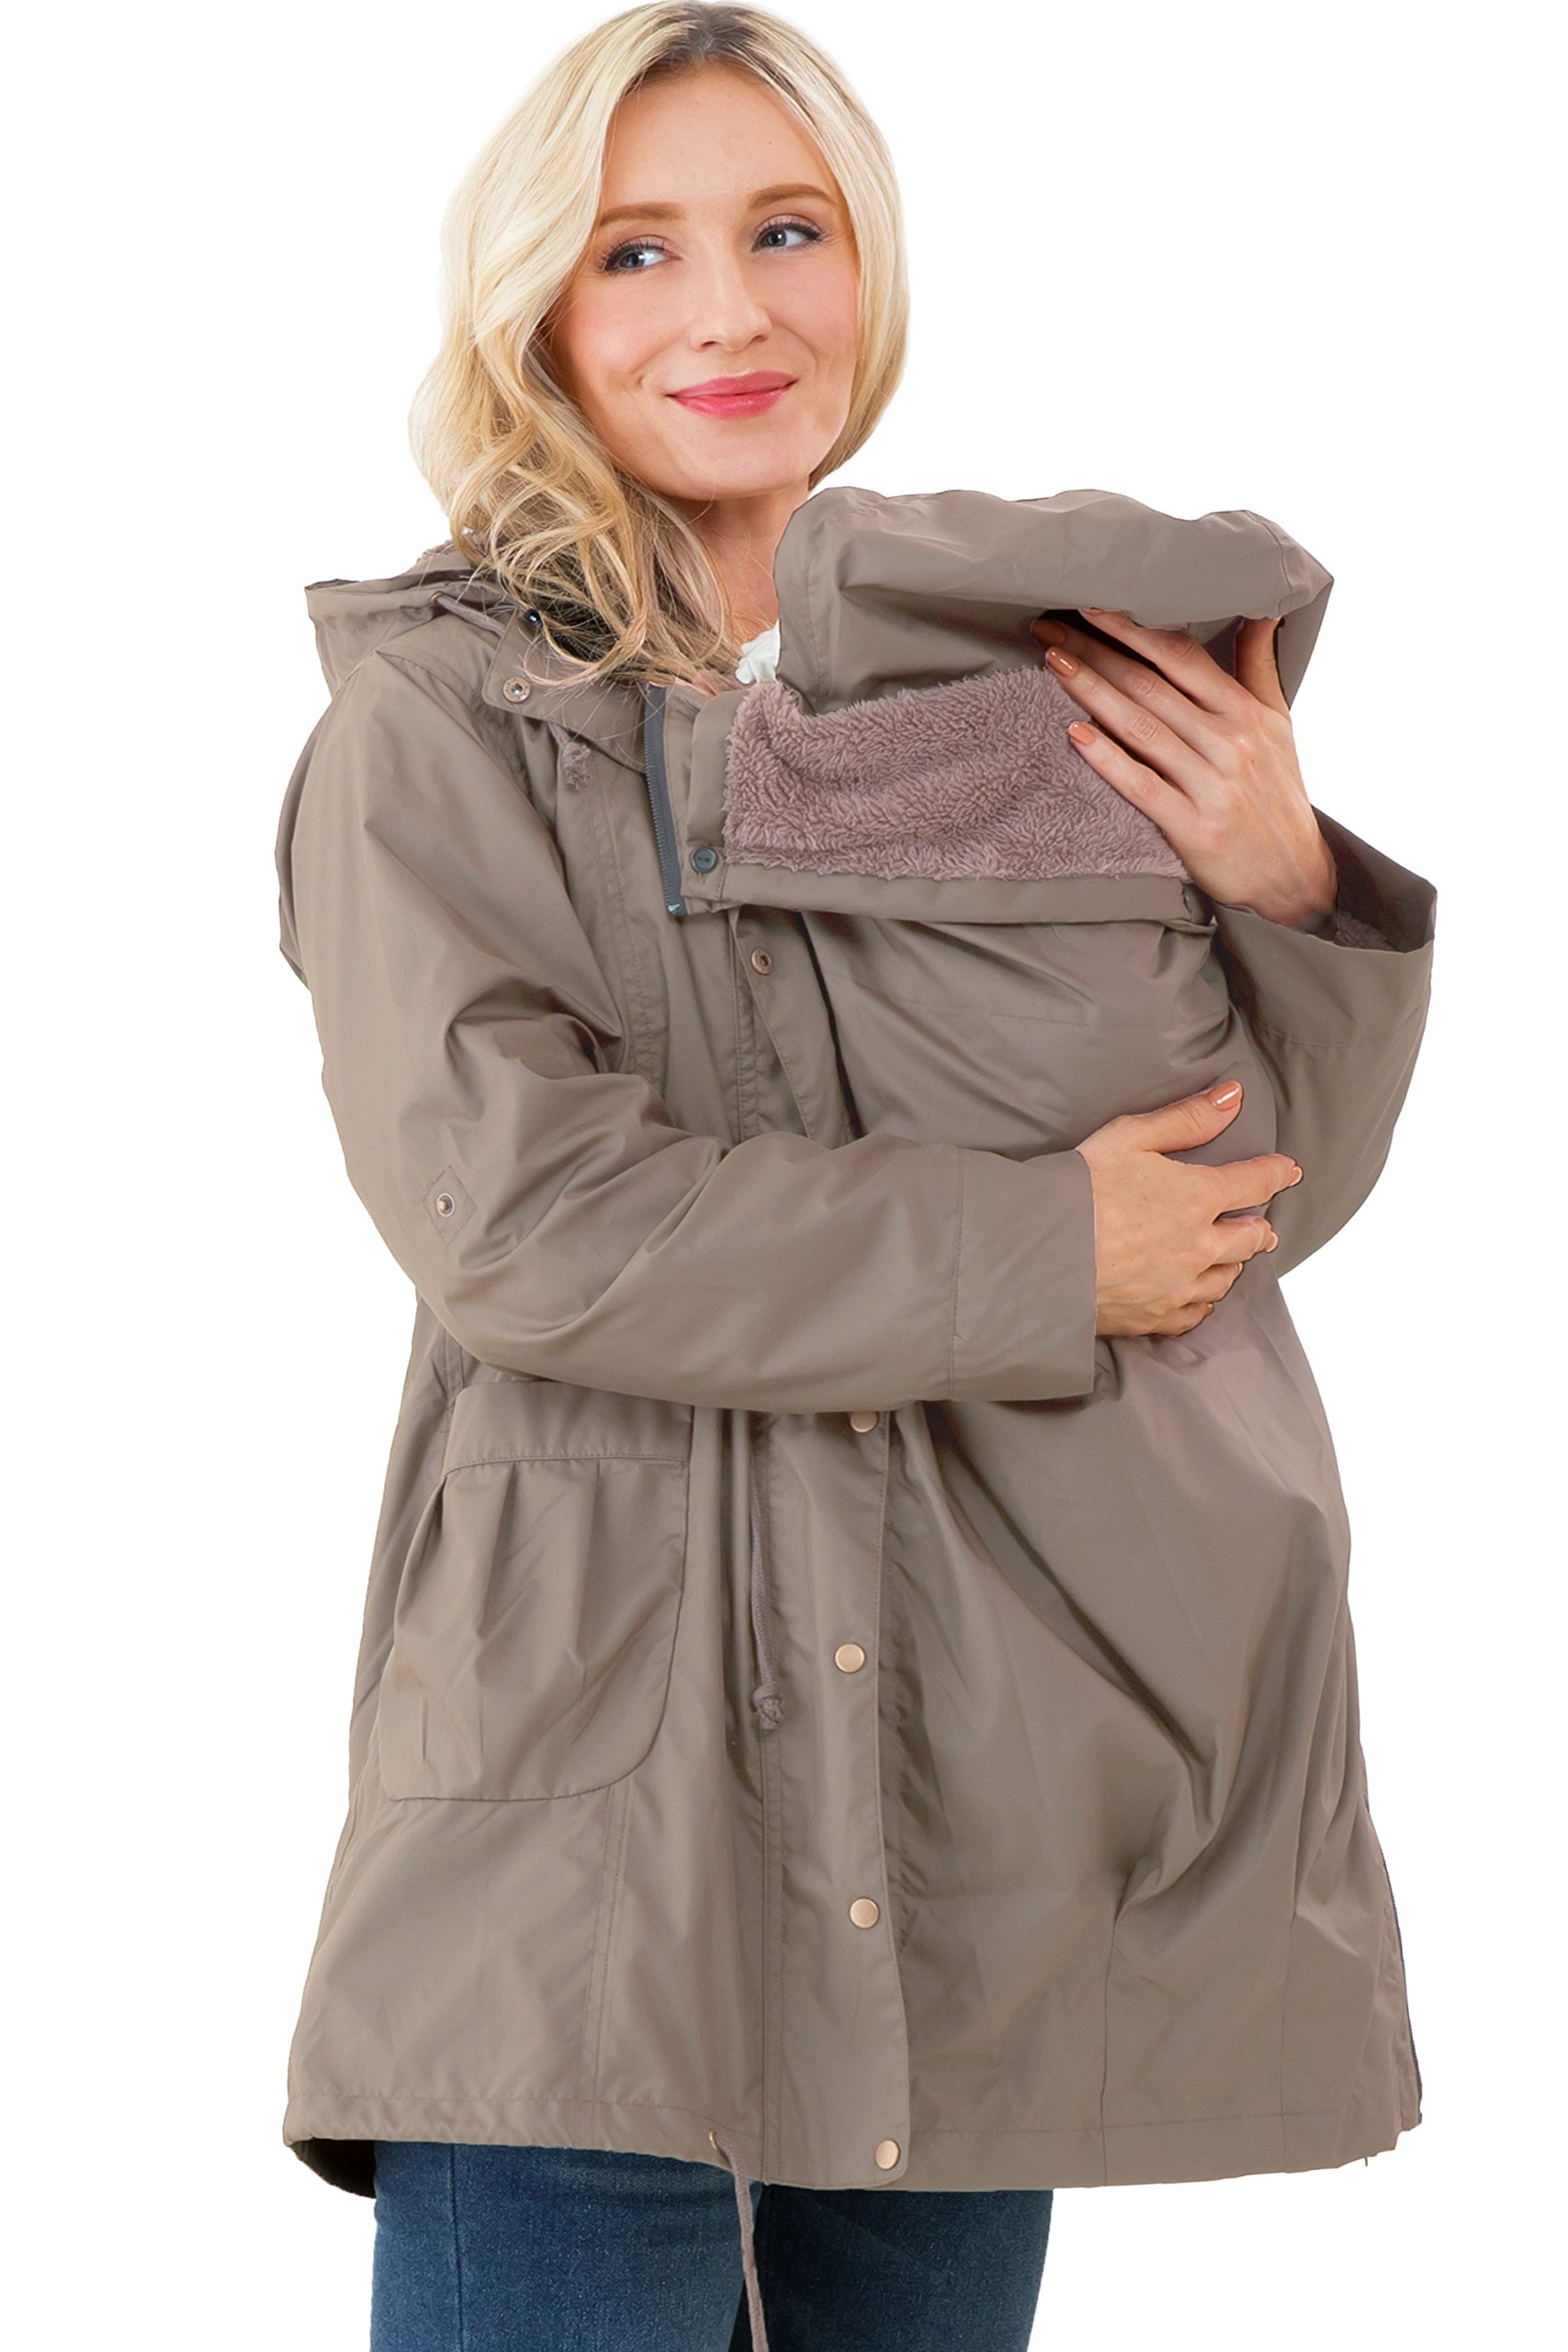 Sweet Mommy Multifunctional Mod's Style Mama Coat with a Baby PouchMocha, S by Sweet Mommy